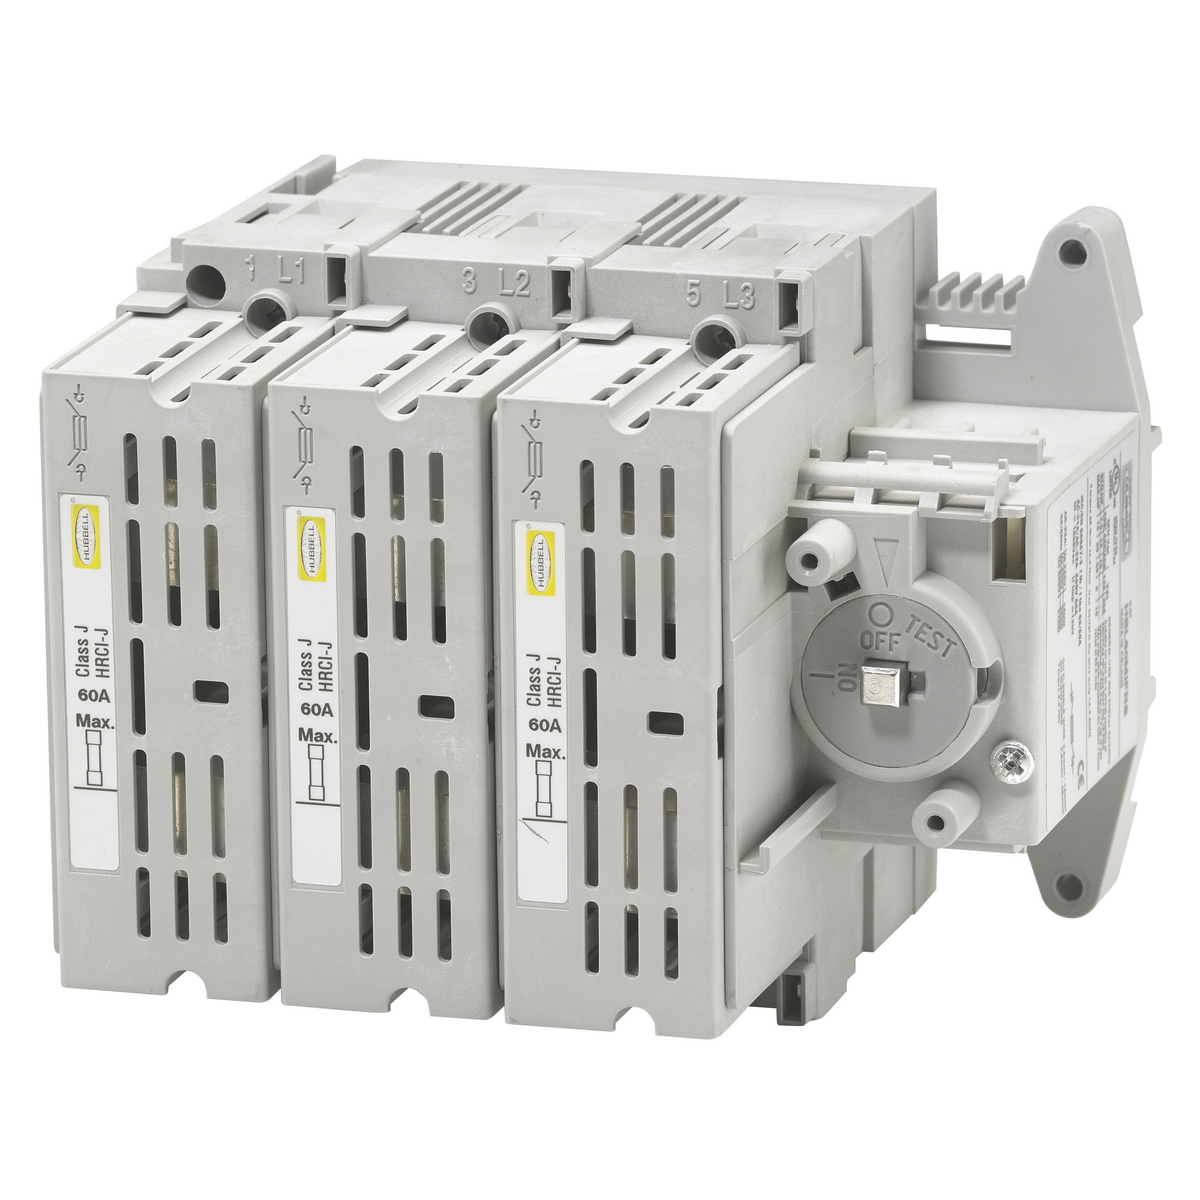 HUBHBL30MIRS REP SWITCH FOR P+S MEC. INTR.LOK,30A ,HBL30MIRS, HUBBELL